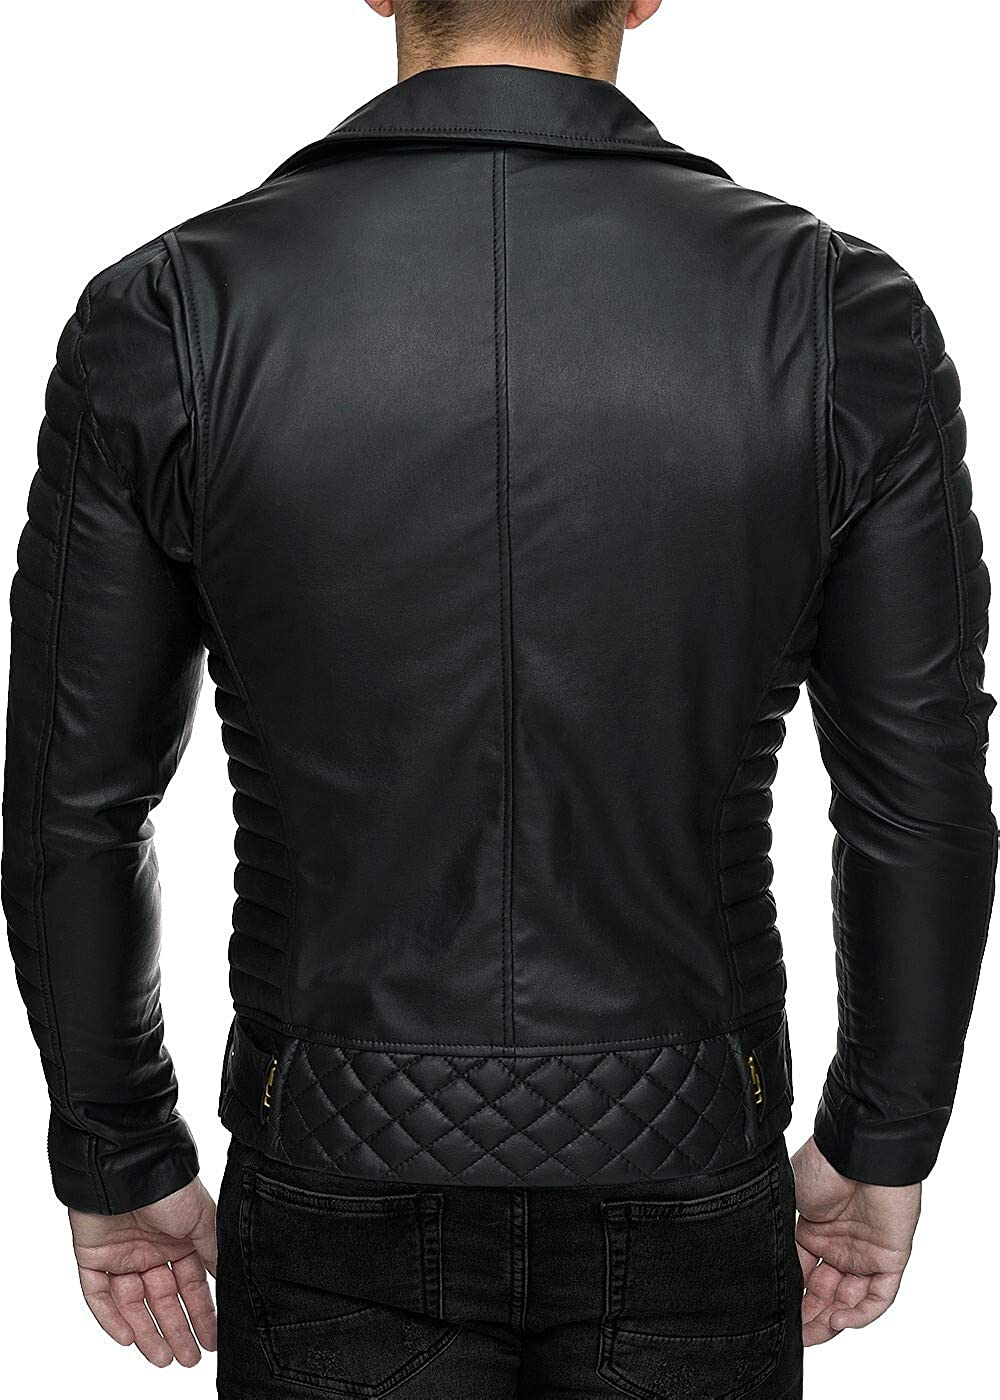 Reichstadt Men's biker jacket, removable belt. Black - Rs001 Pu - Gold Zipper